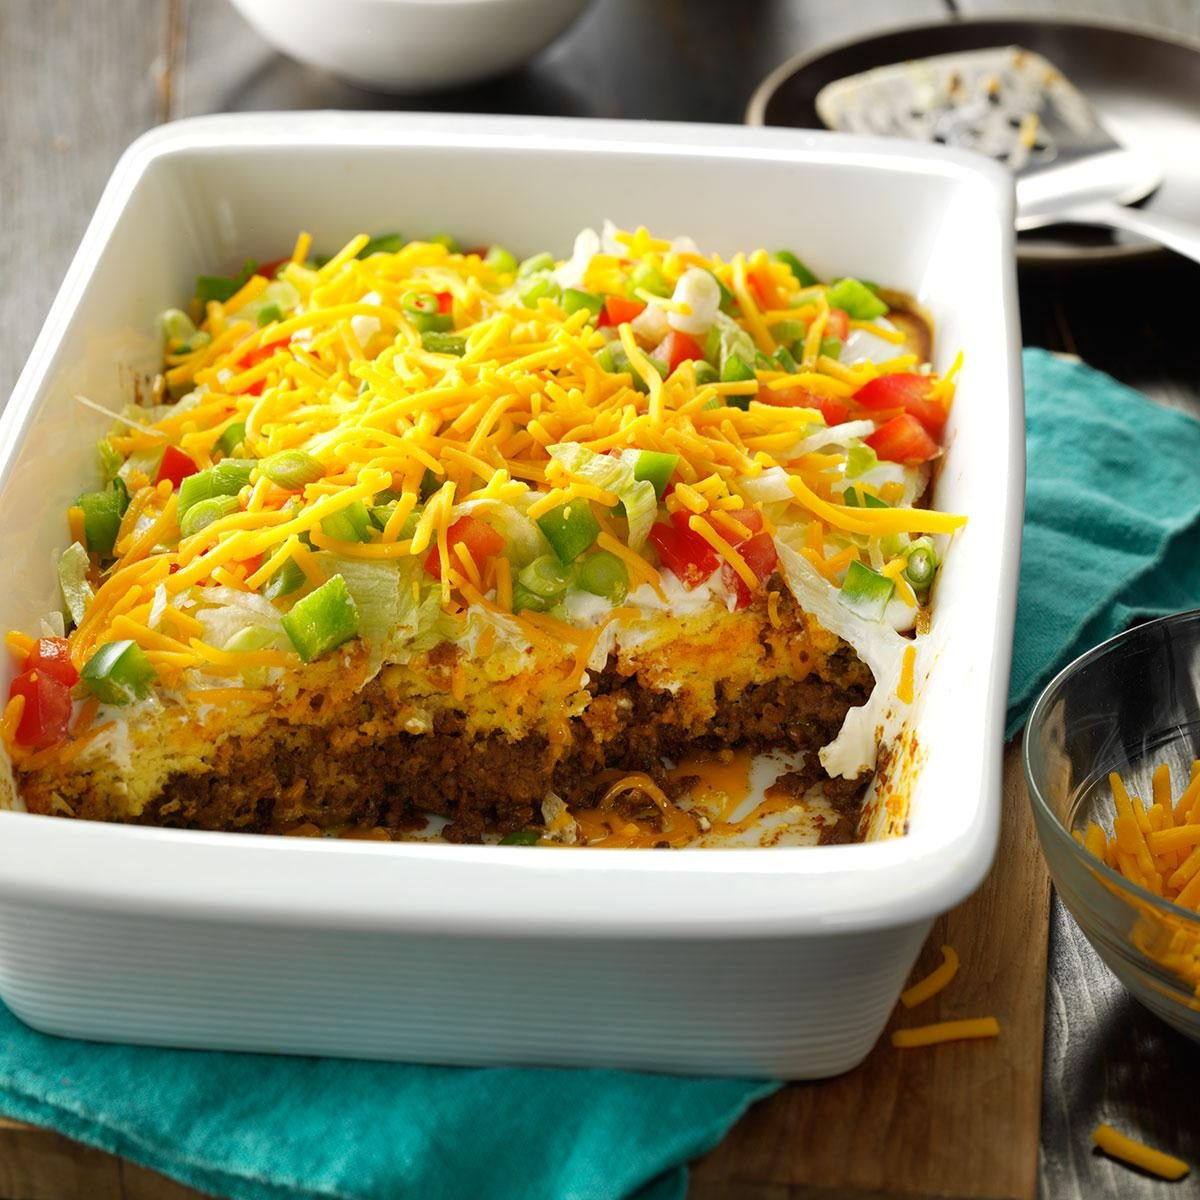 40 Easy Potluck Recipes For Your Graduation Party: Potluck Taco Casserole Recipe